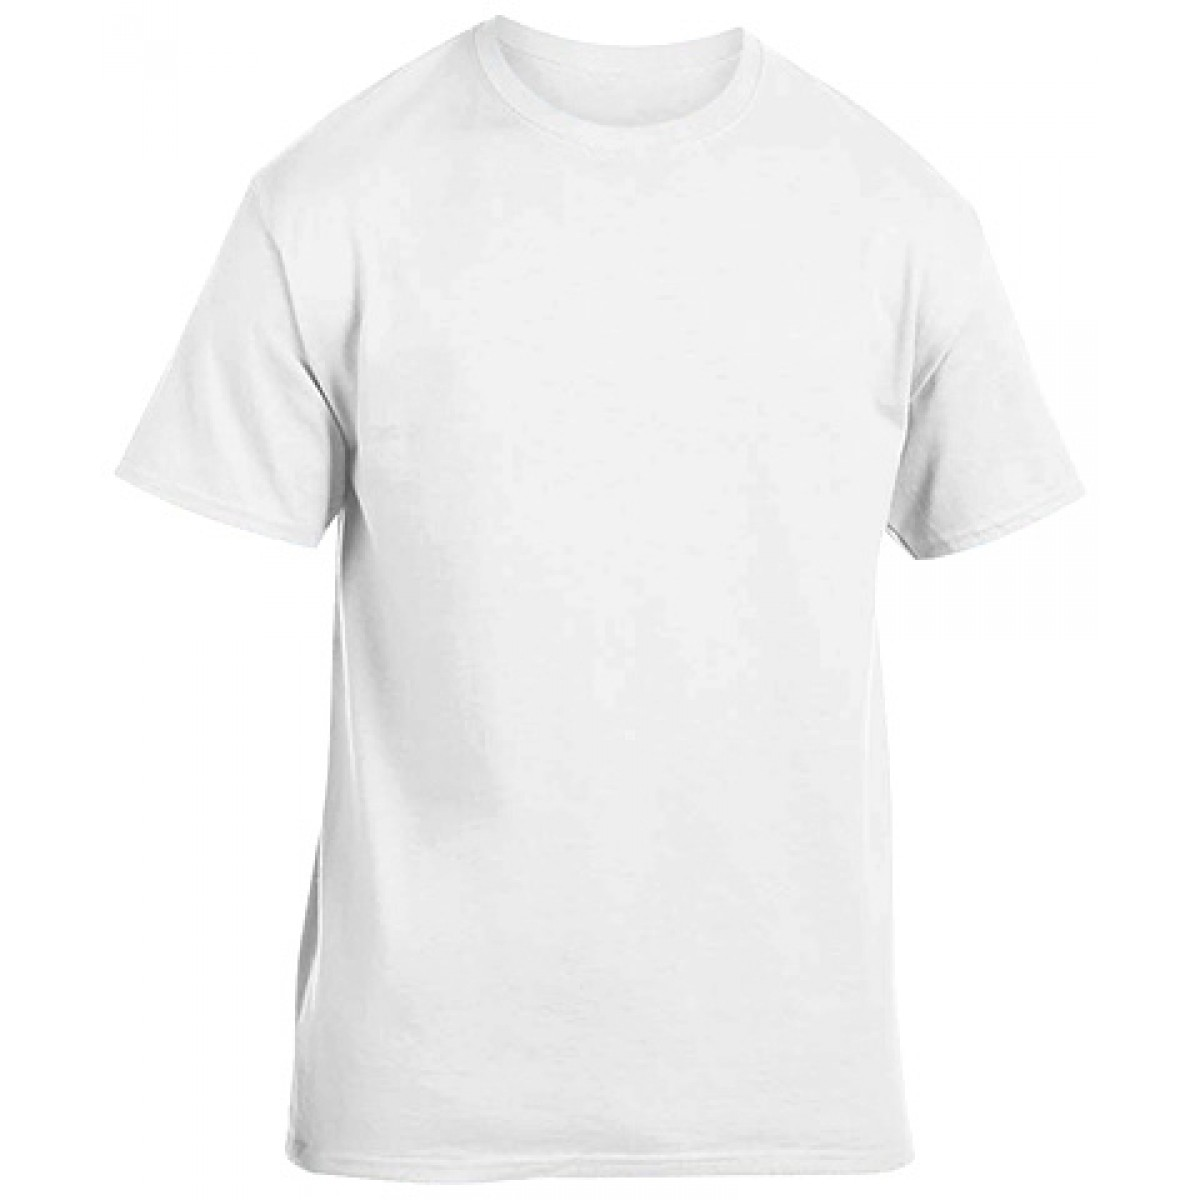 Cotton Short Sleeve T-Shirt / White